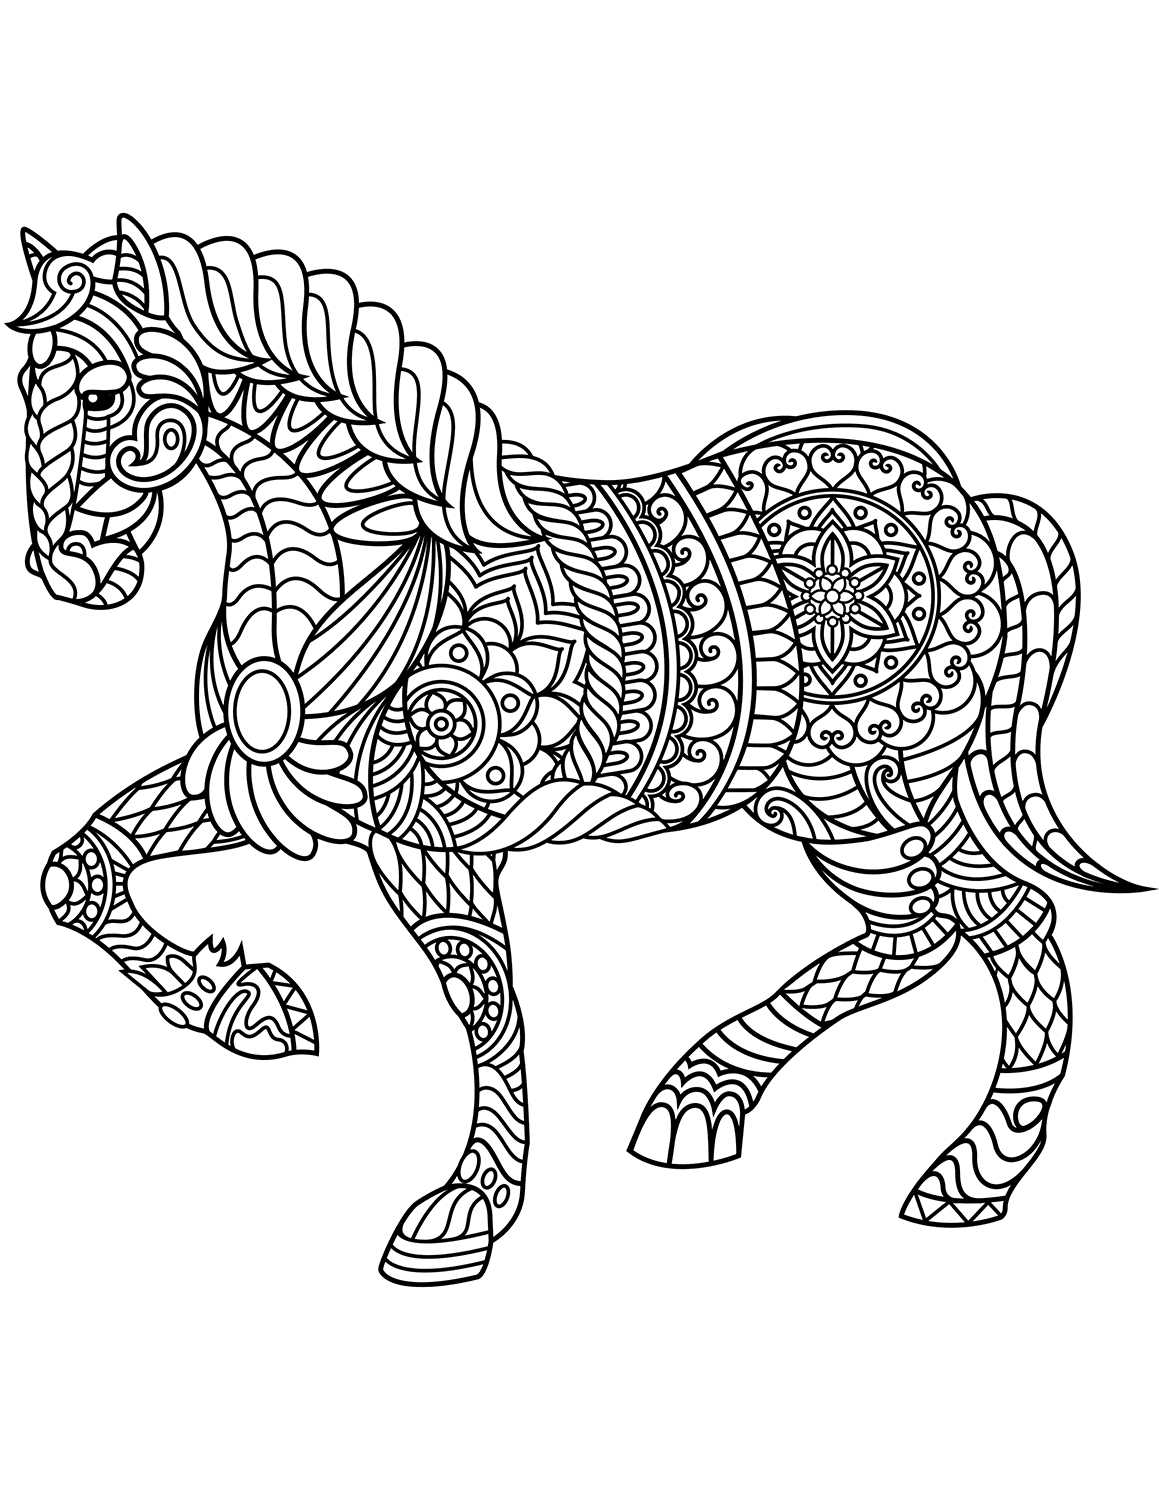 horse coloring pages for kids horse coloring pages for adults best coloring pages for kids pages horse coloring for kids